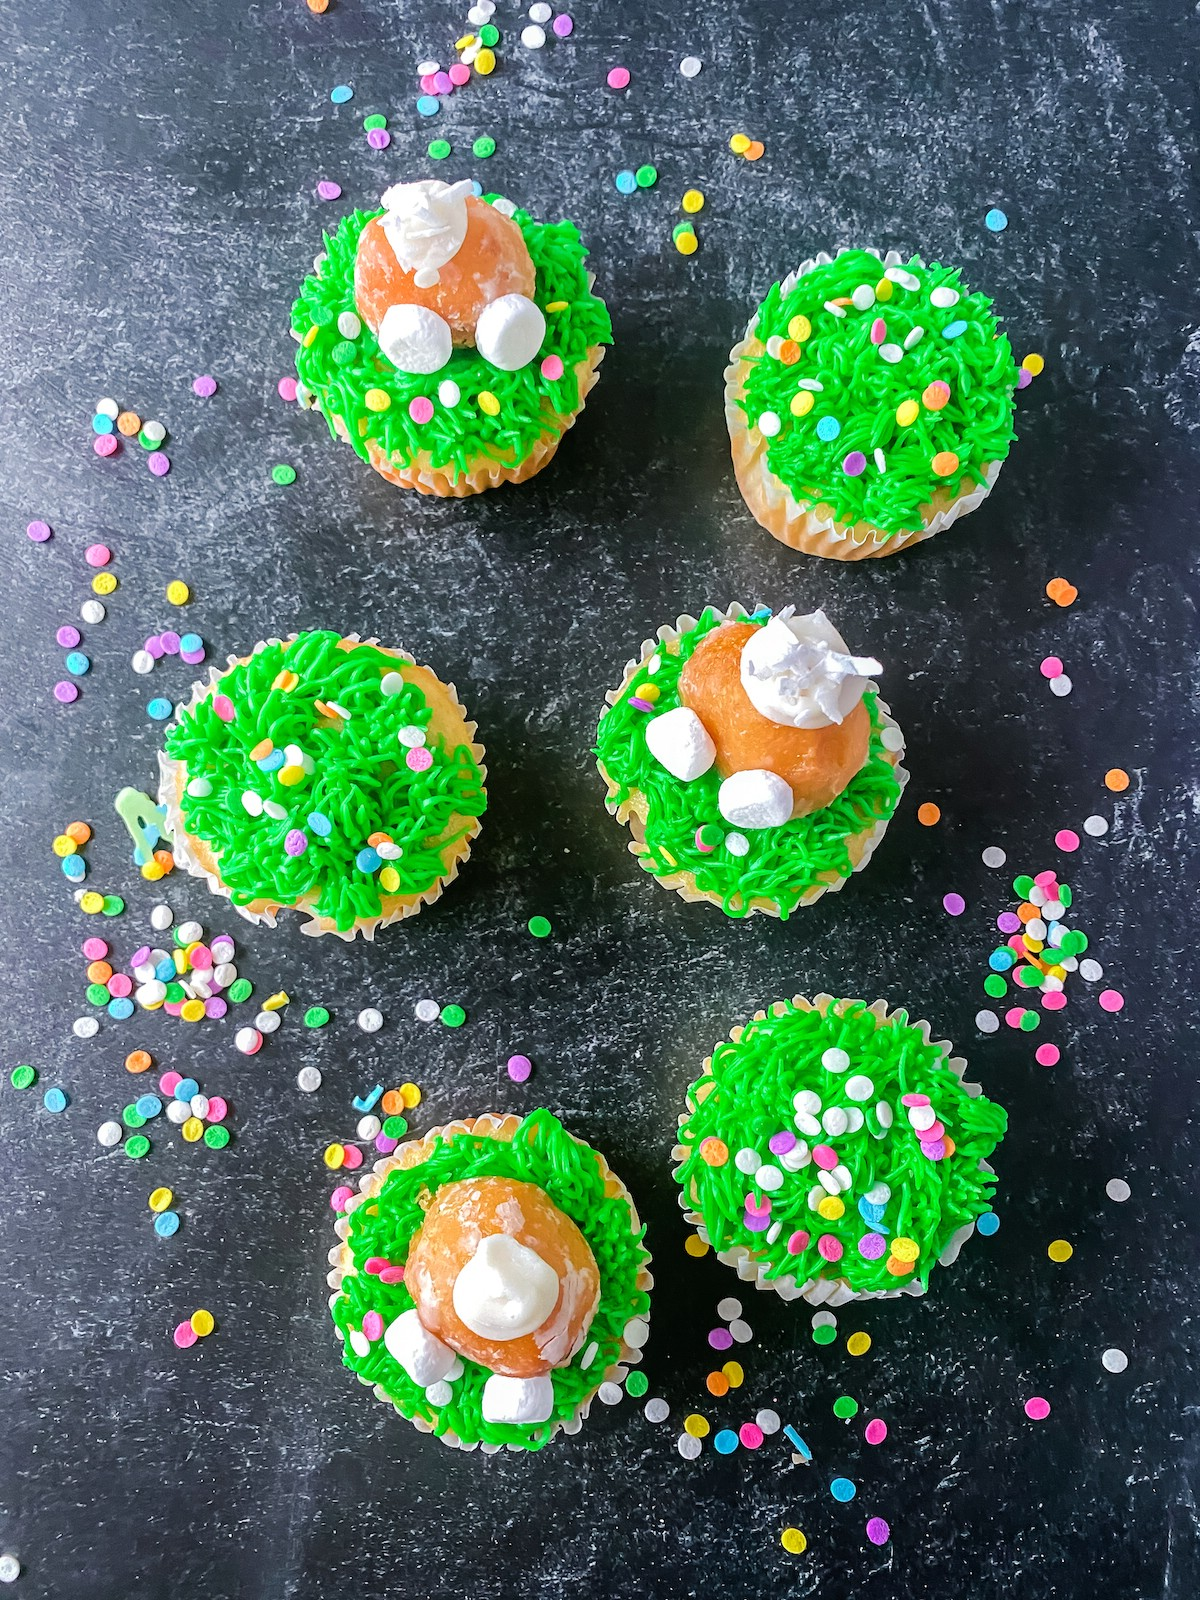 Easter cupcakes with green icing sitting on black surface